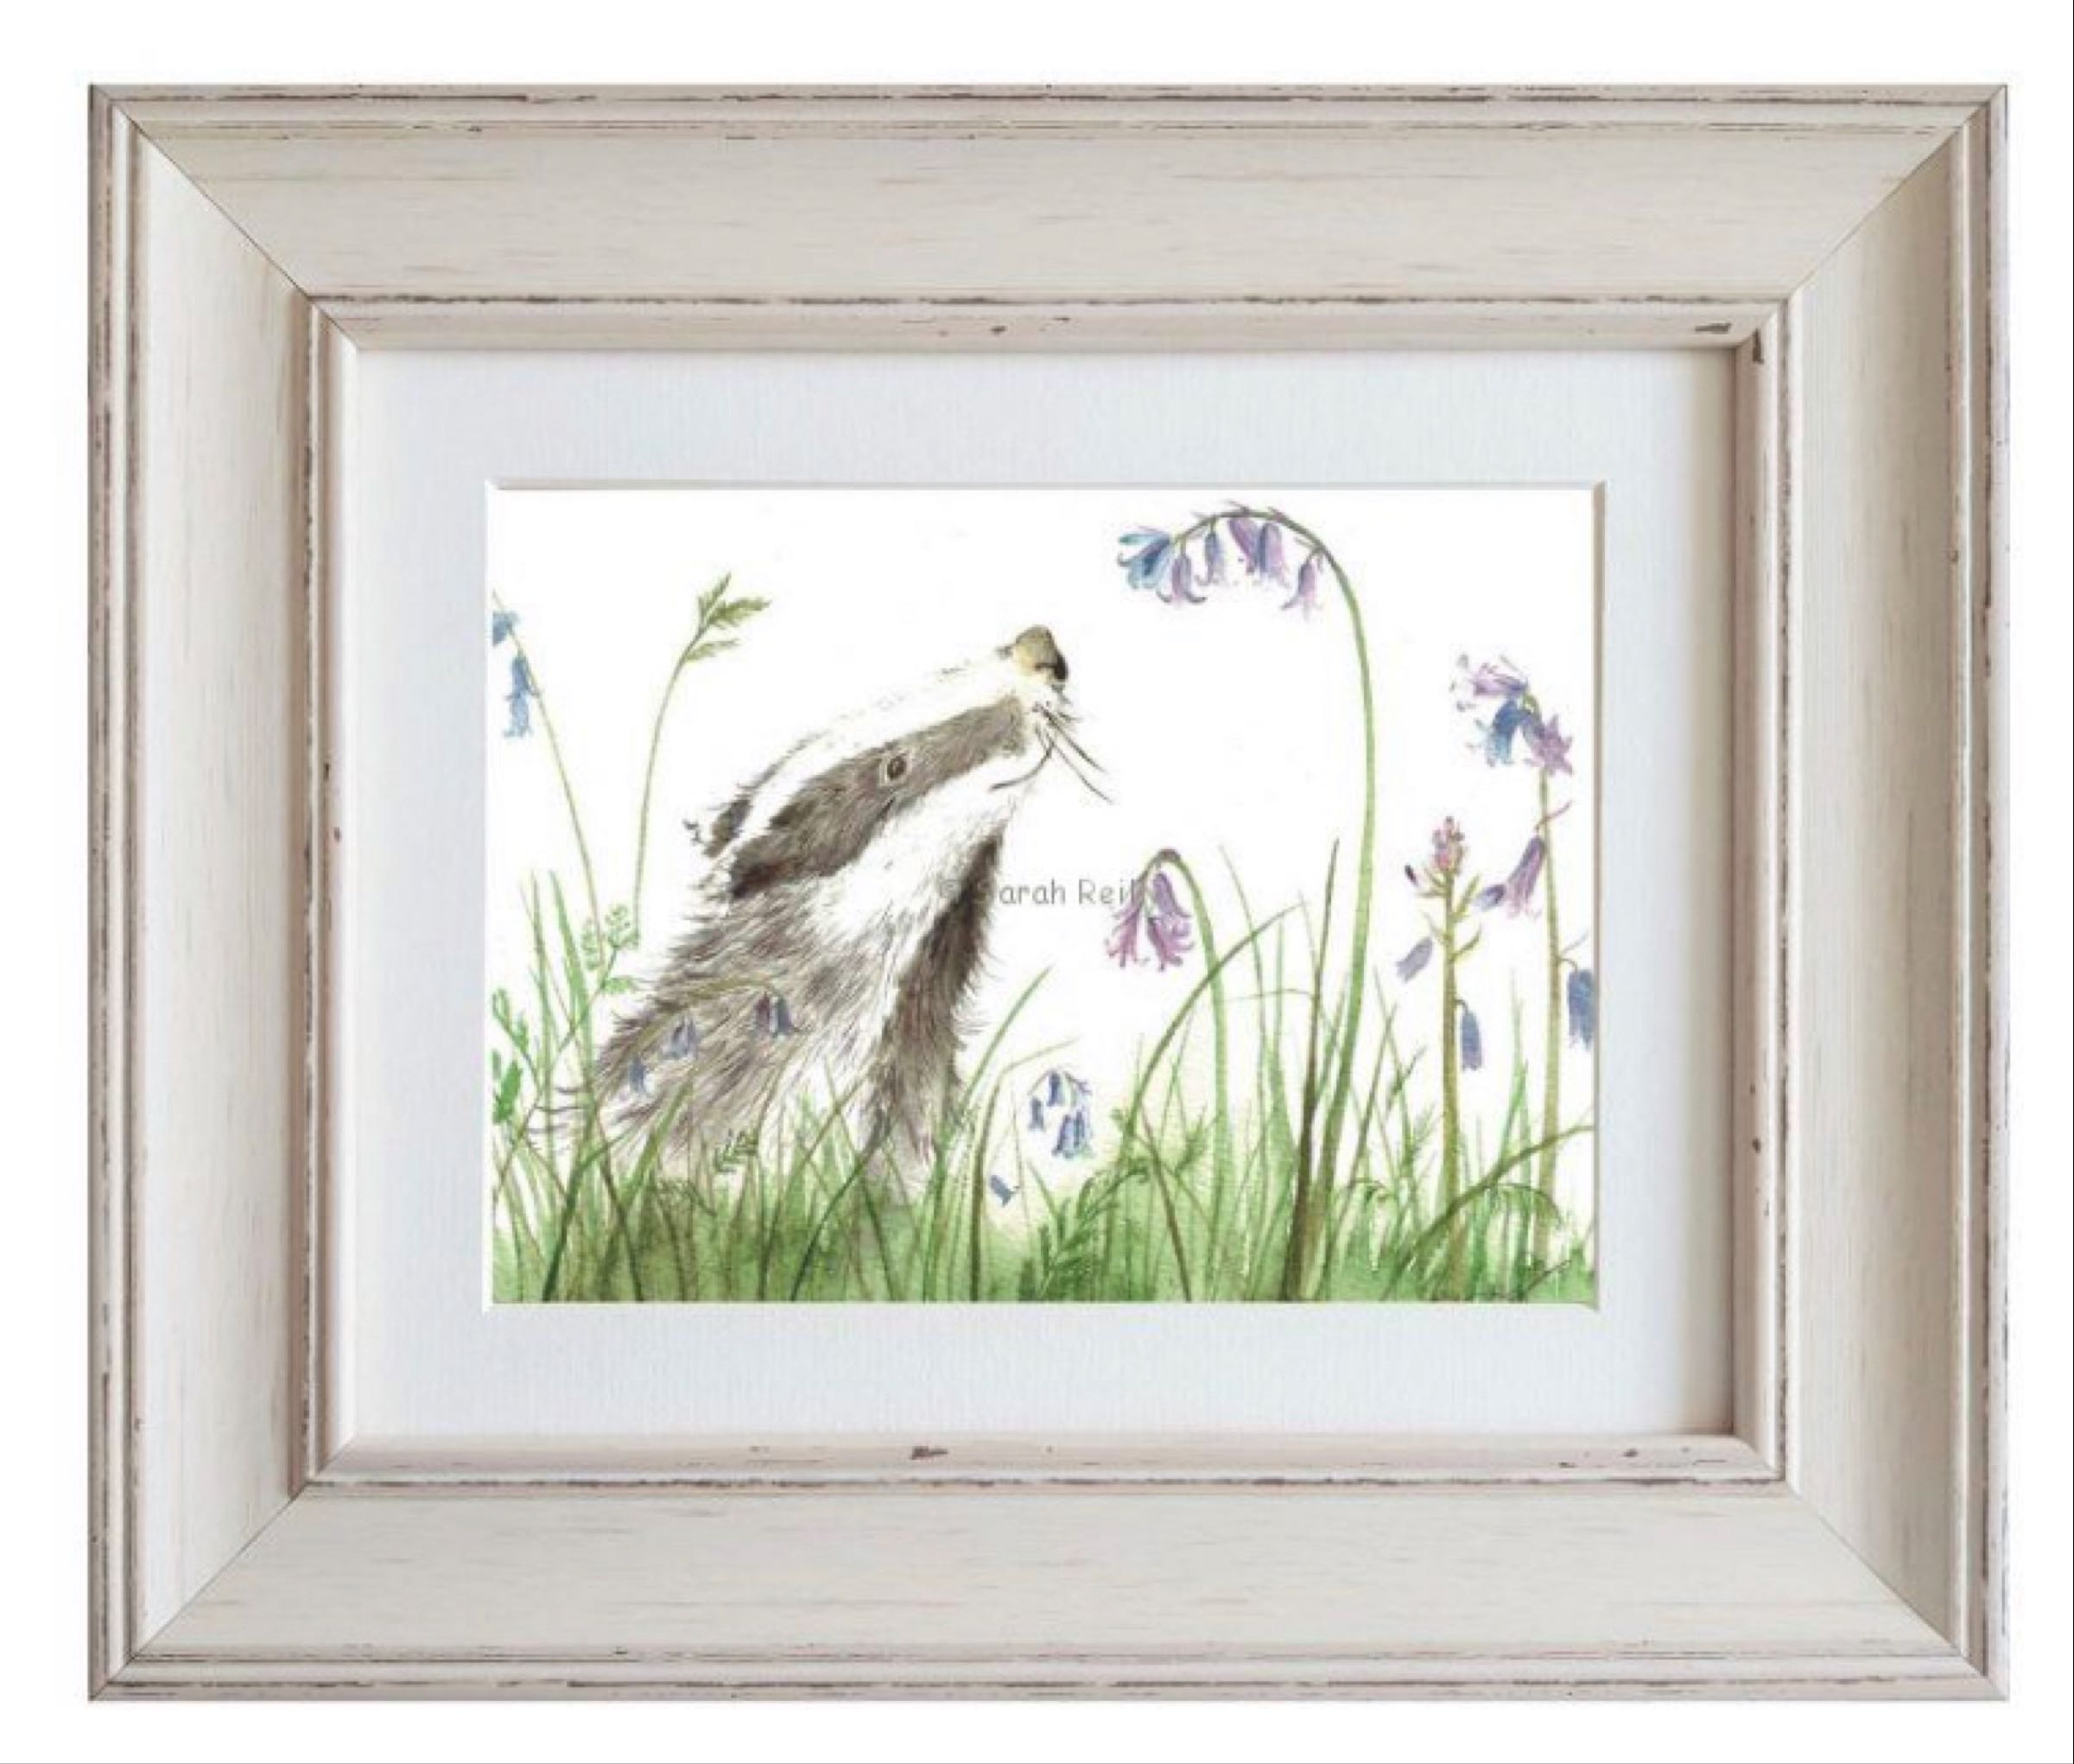 Blissful Badger Framed Print by Sarah Reilly 28cmx33cm